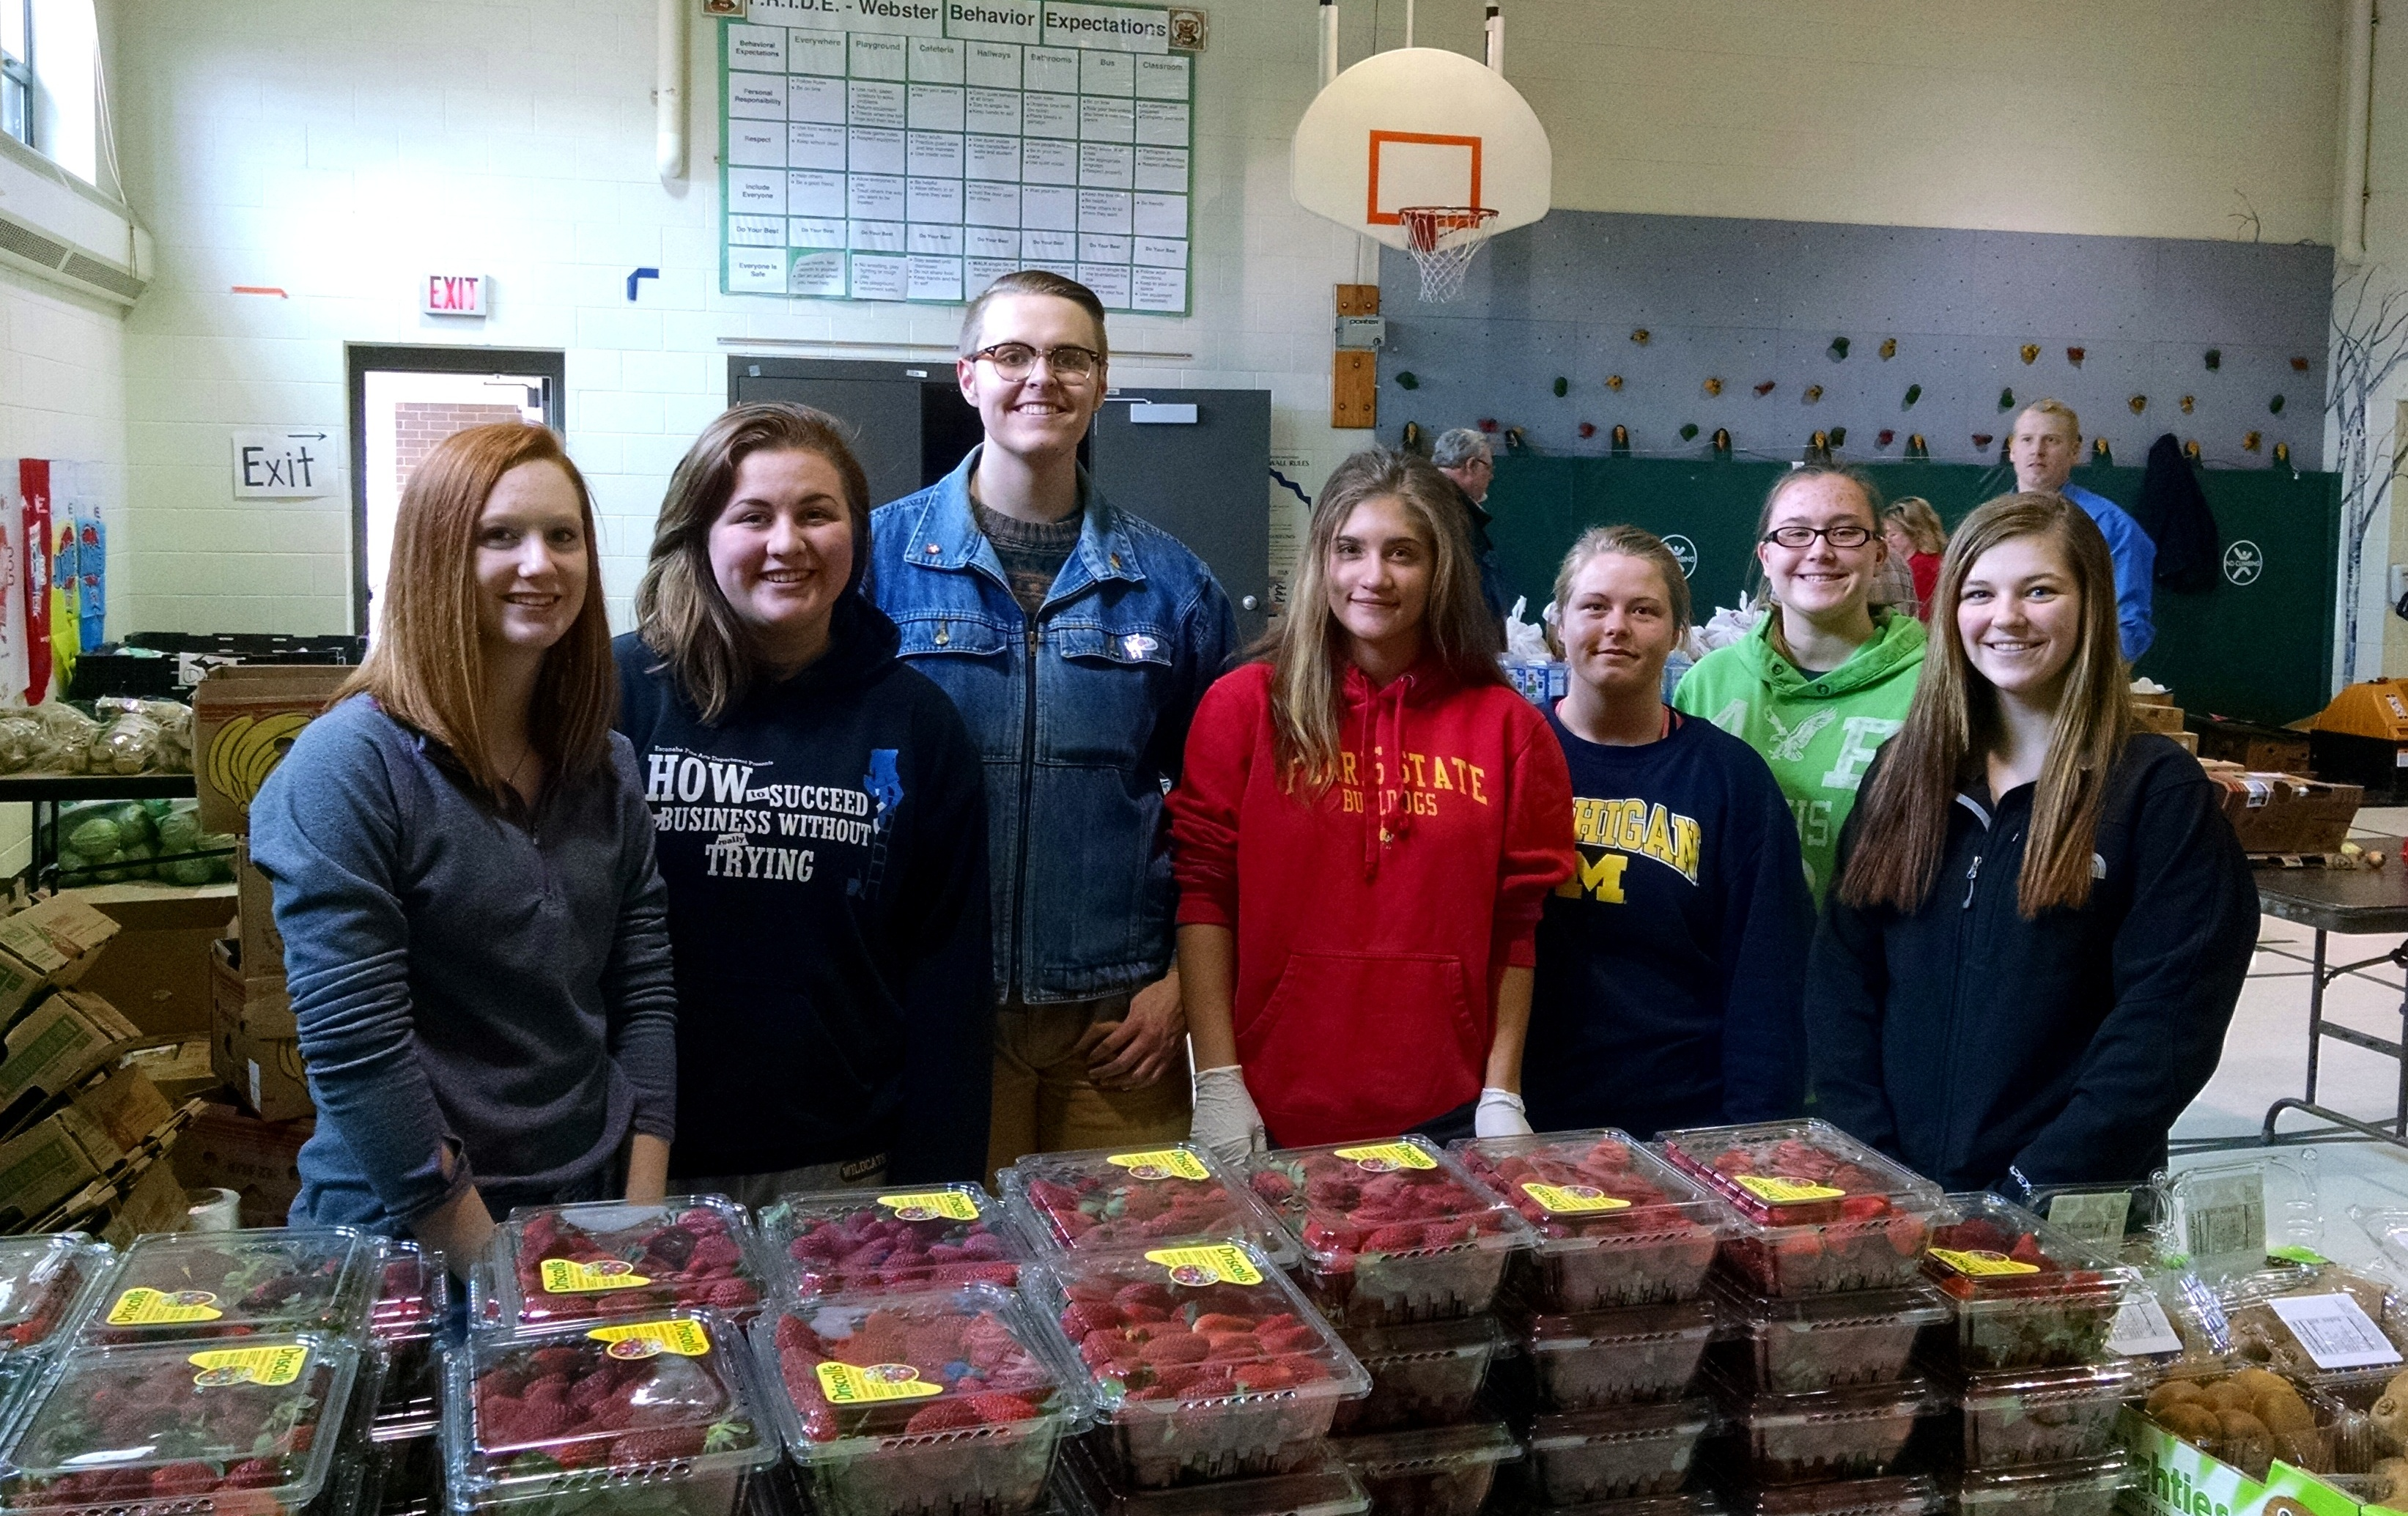 Students from Escanaba High School volunteer at a Mobile Pantry in March 2016.